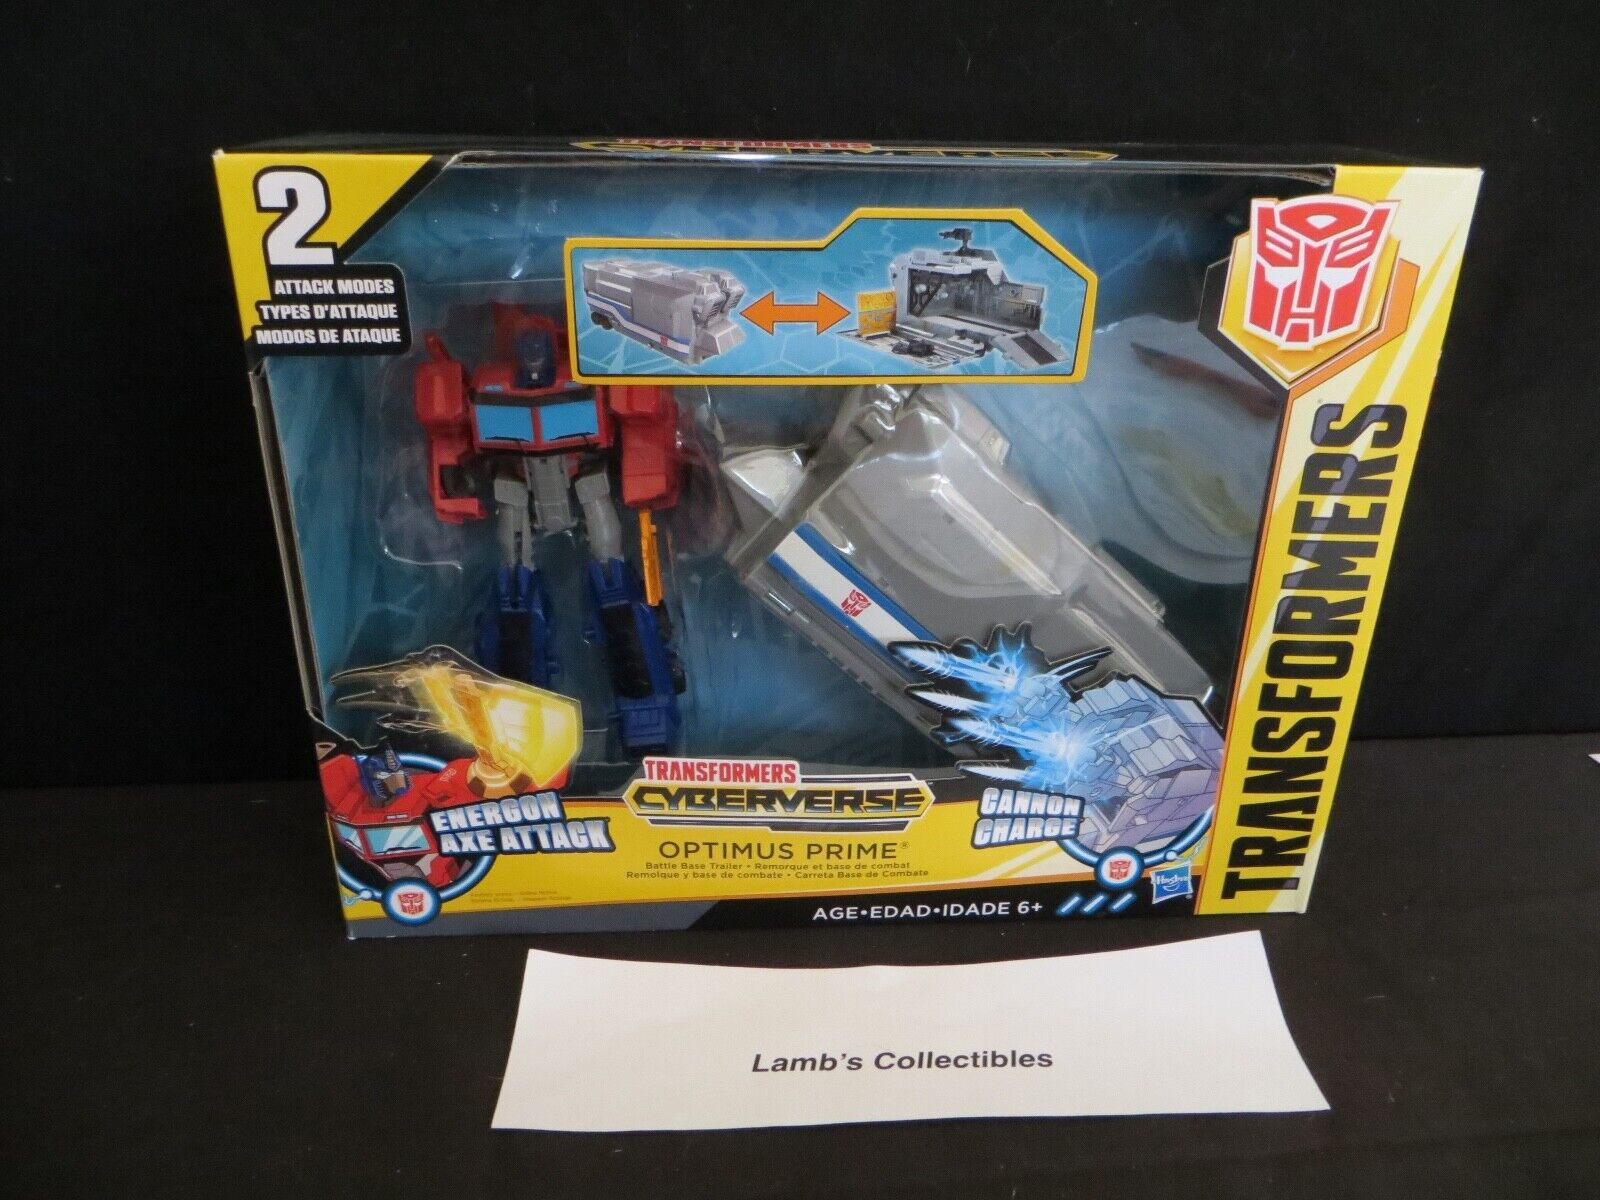 Transformers Cyberverse Optimus Prime 5 1 2  with Battle Base trailer Hasbro